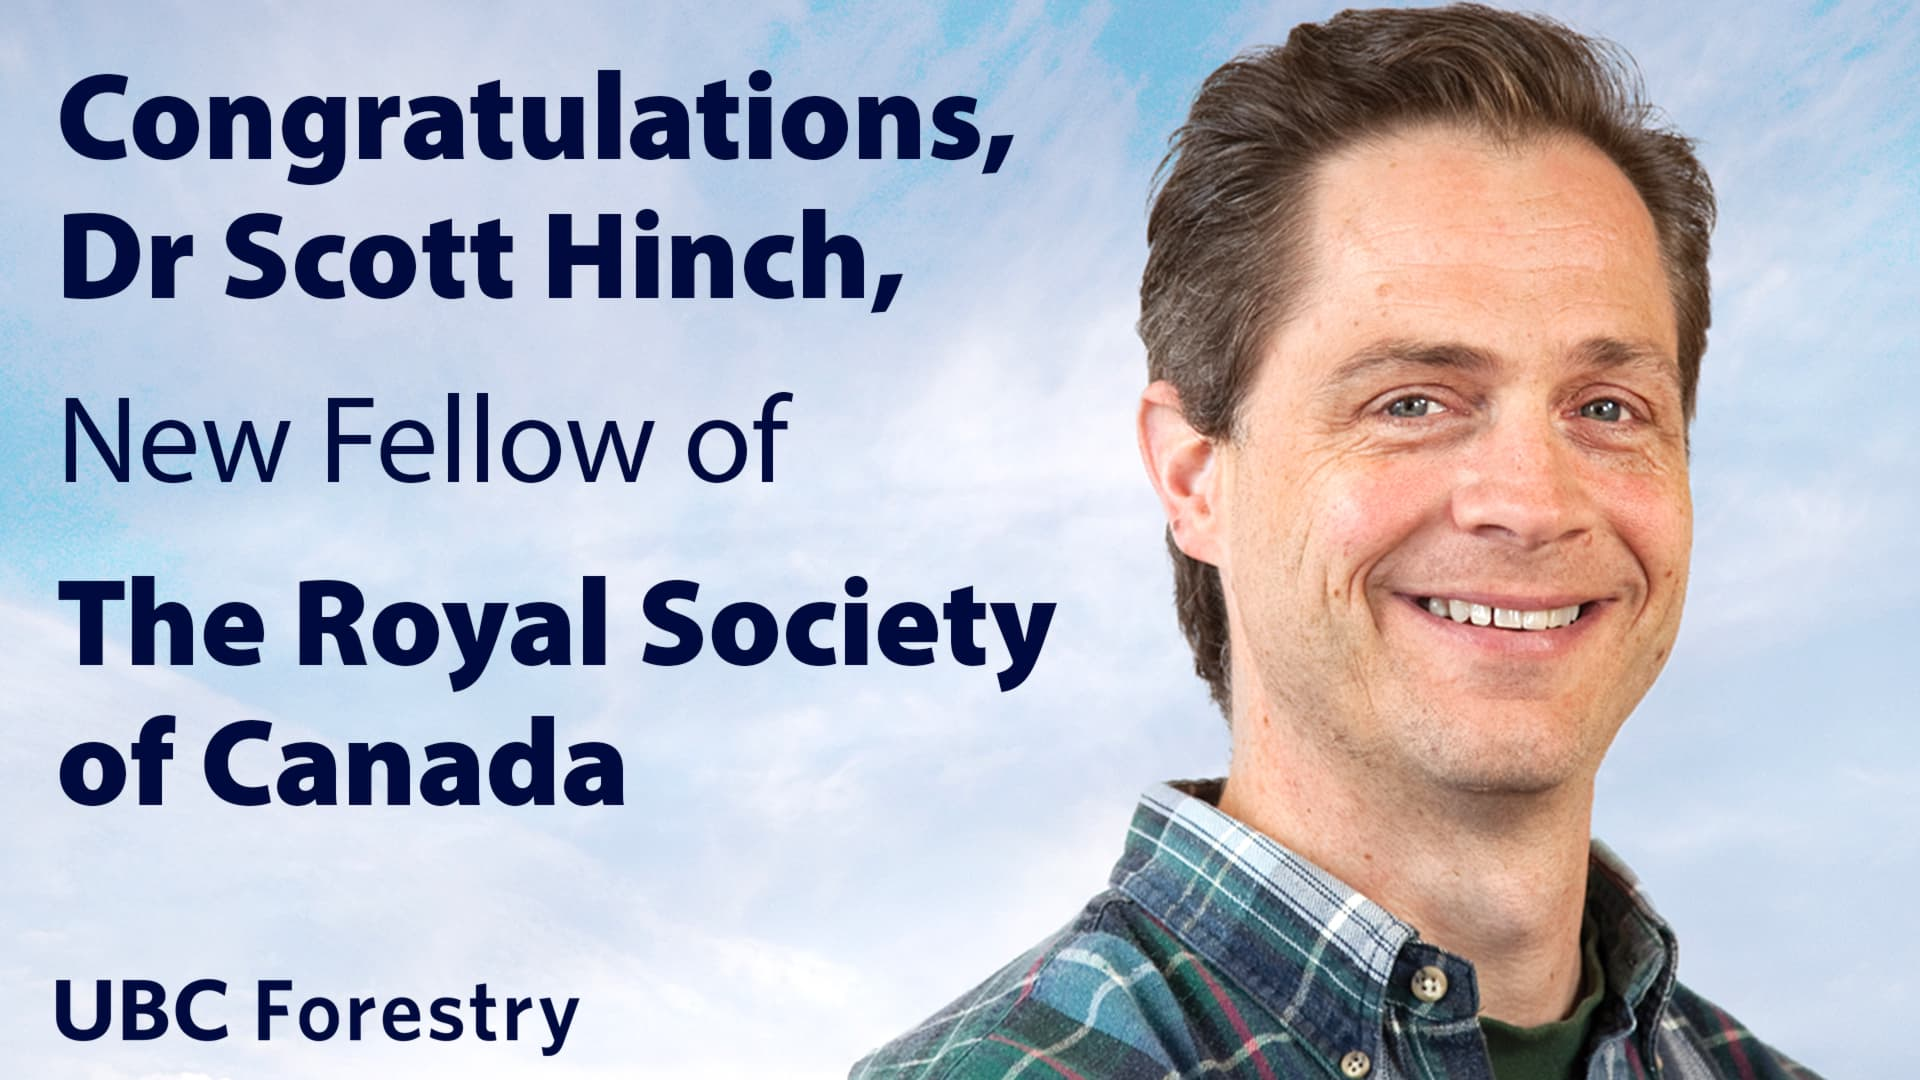 Congratulations, Dr Scott Hinch, New Fellow of the Royal Society of Canada